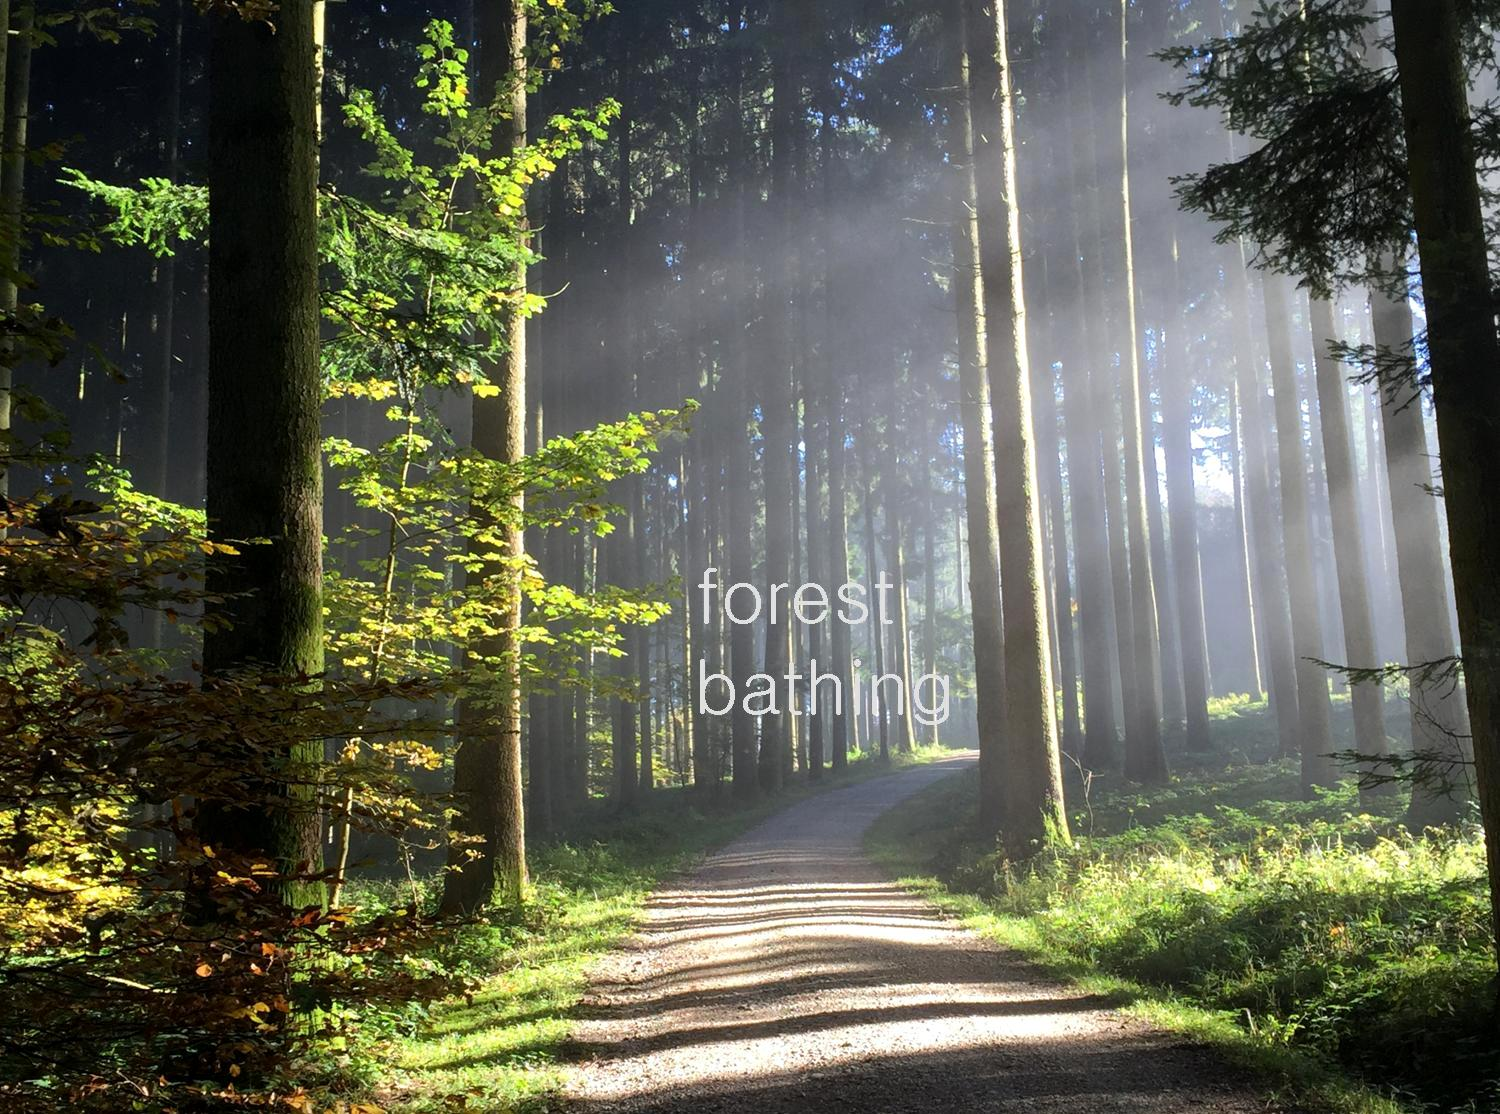 forest bathing Aquila Camenzind